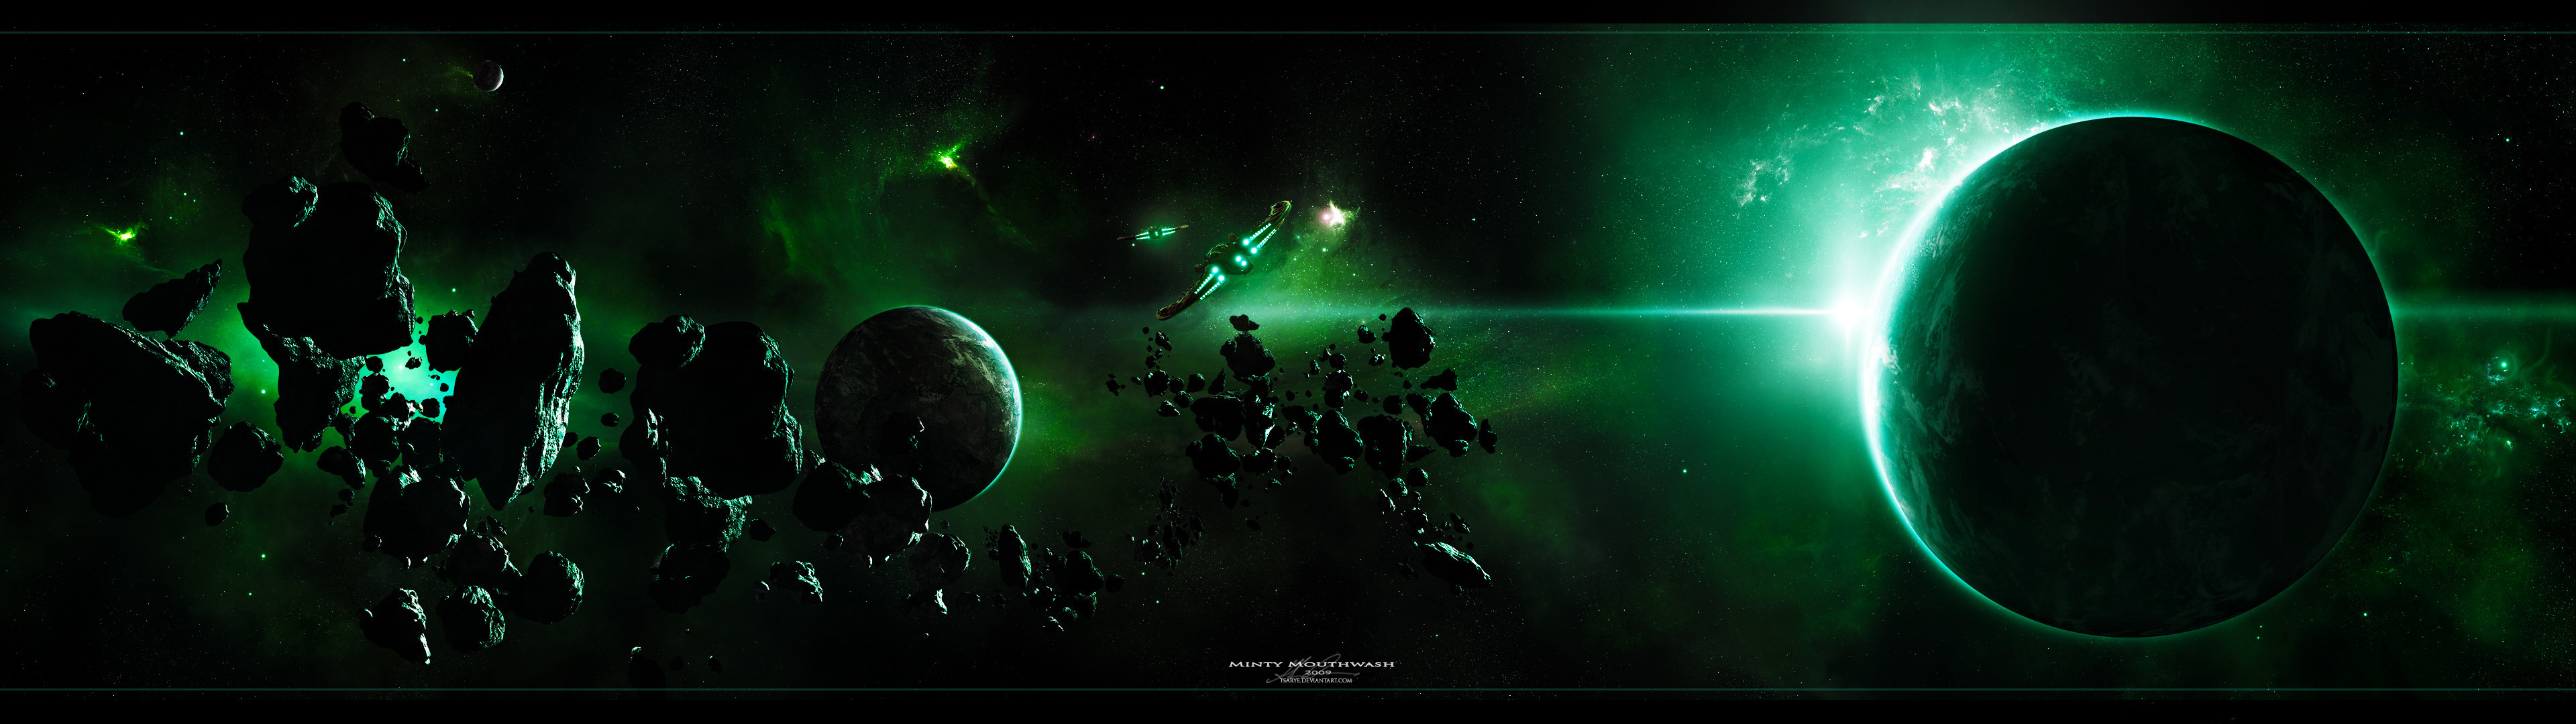 Eve Online Nebula Wiring Diagrams Virtual Reality Circuit Builder Spectra7 Microsystems Is Trending Space Panoramic Wallpaper Wallpapersafari Cobaltite Nearest Concord Station